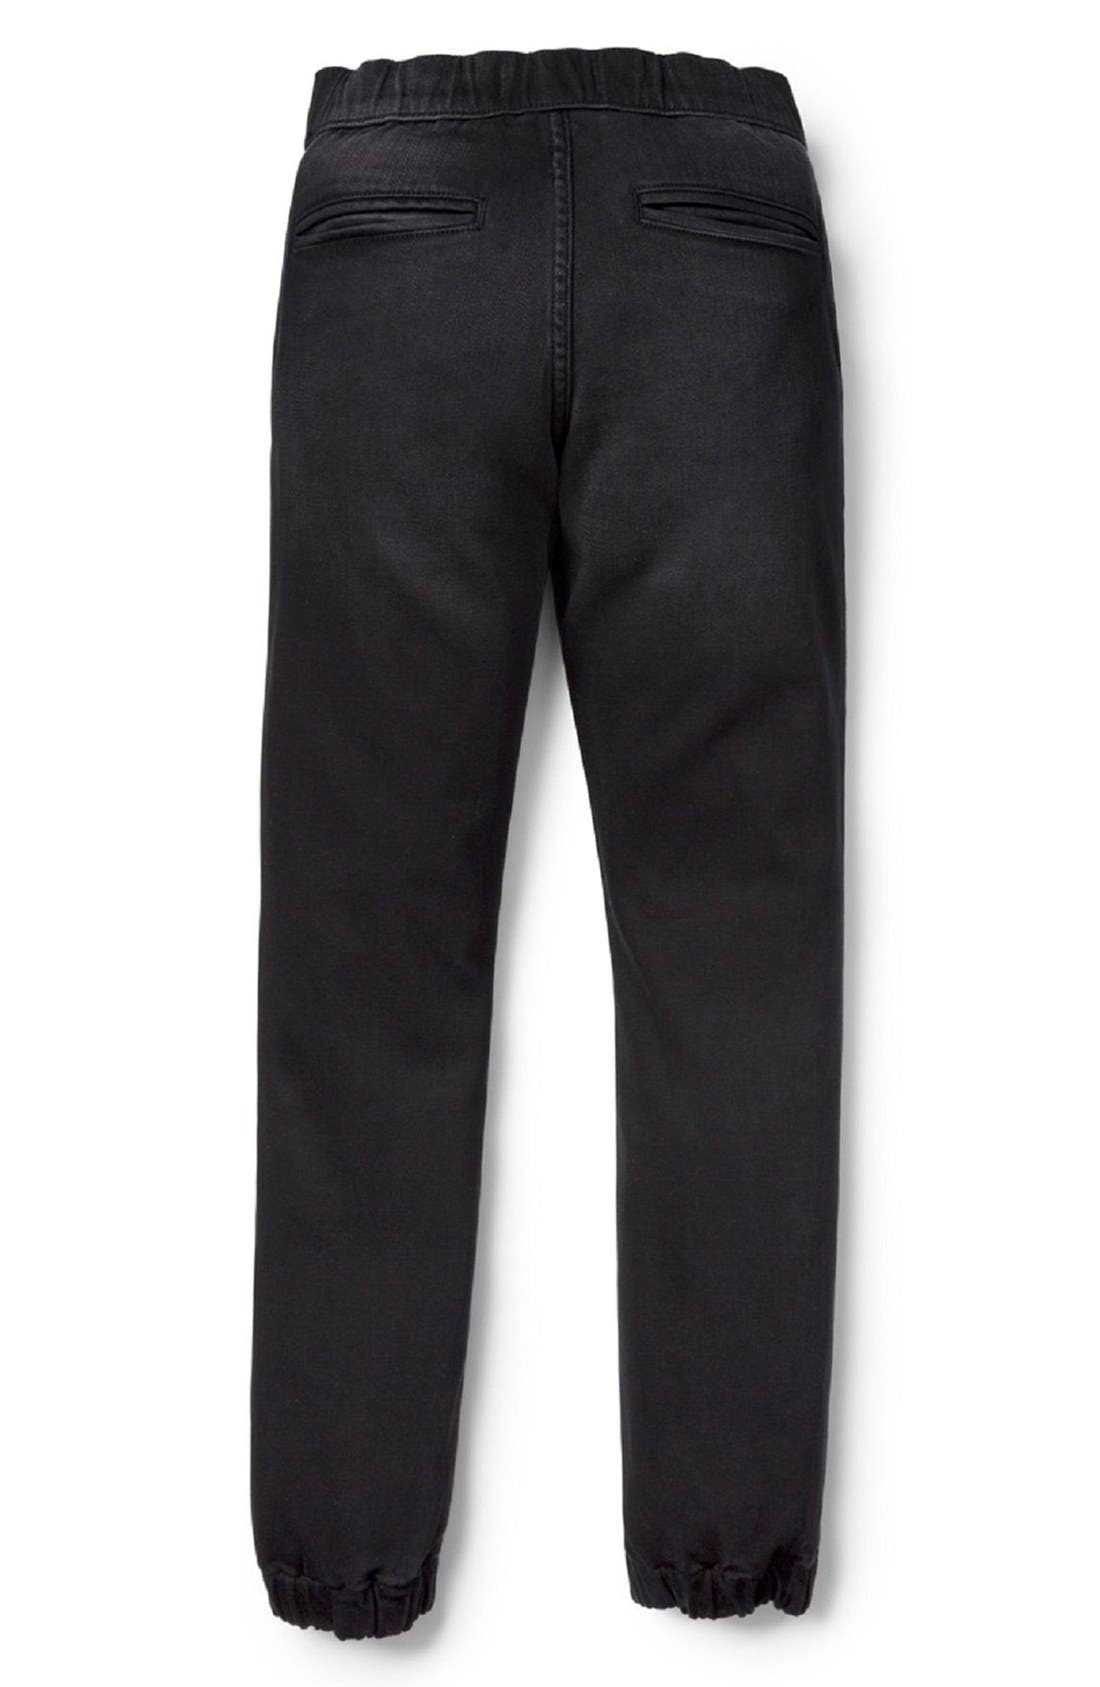 Alternate Image 2  - DL1961 'Jackson' Jogger Pants (Big Boys)